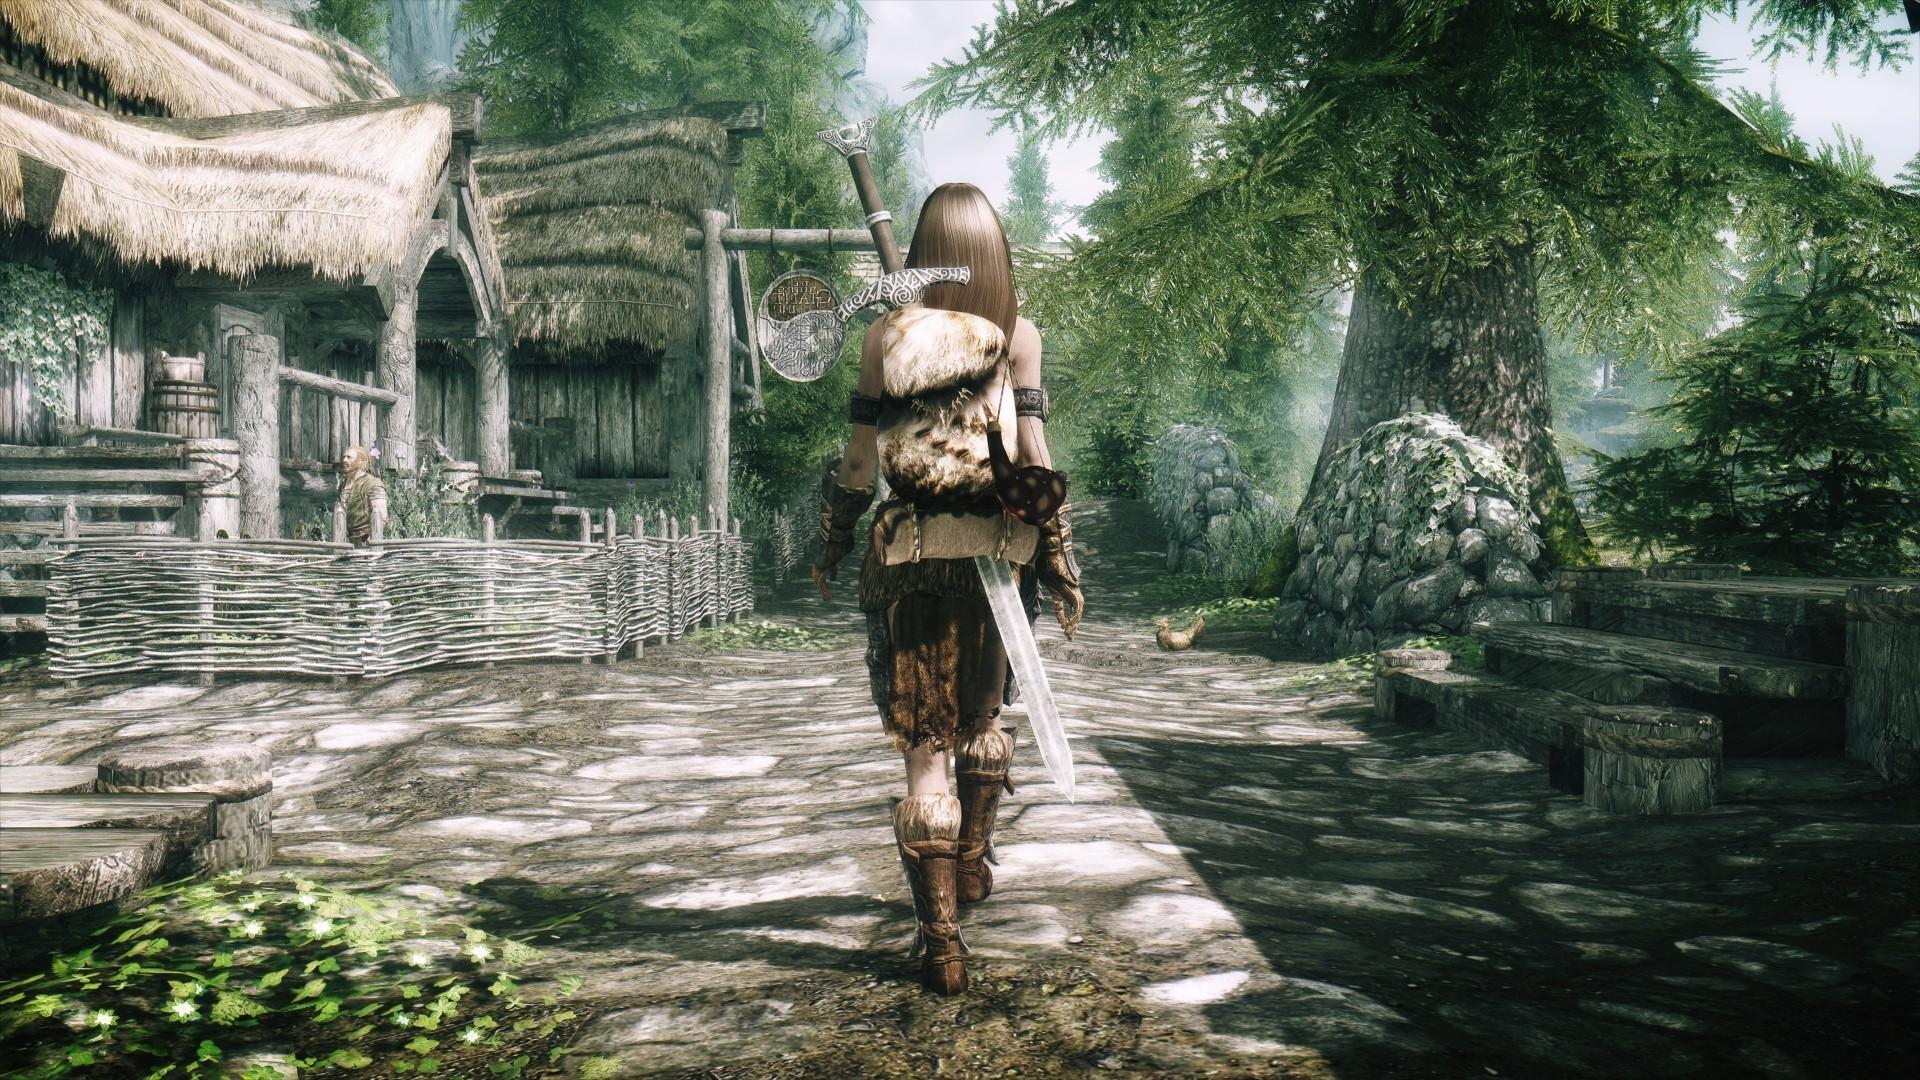 Skyrim Wallpaper Android - Ps4 Rpg Games 2019 , HD Wallpaper & Backgrounds